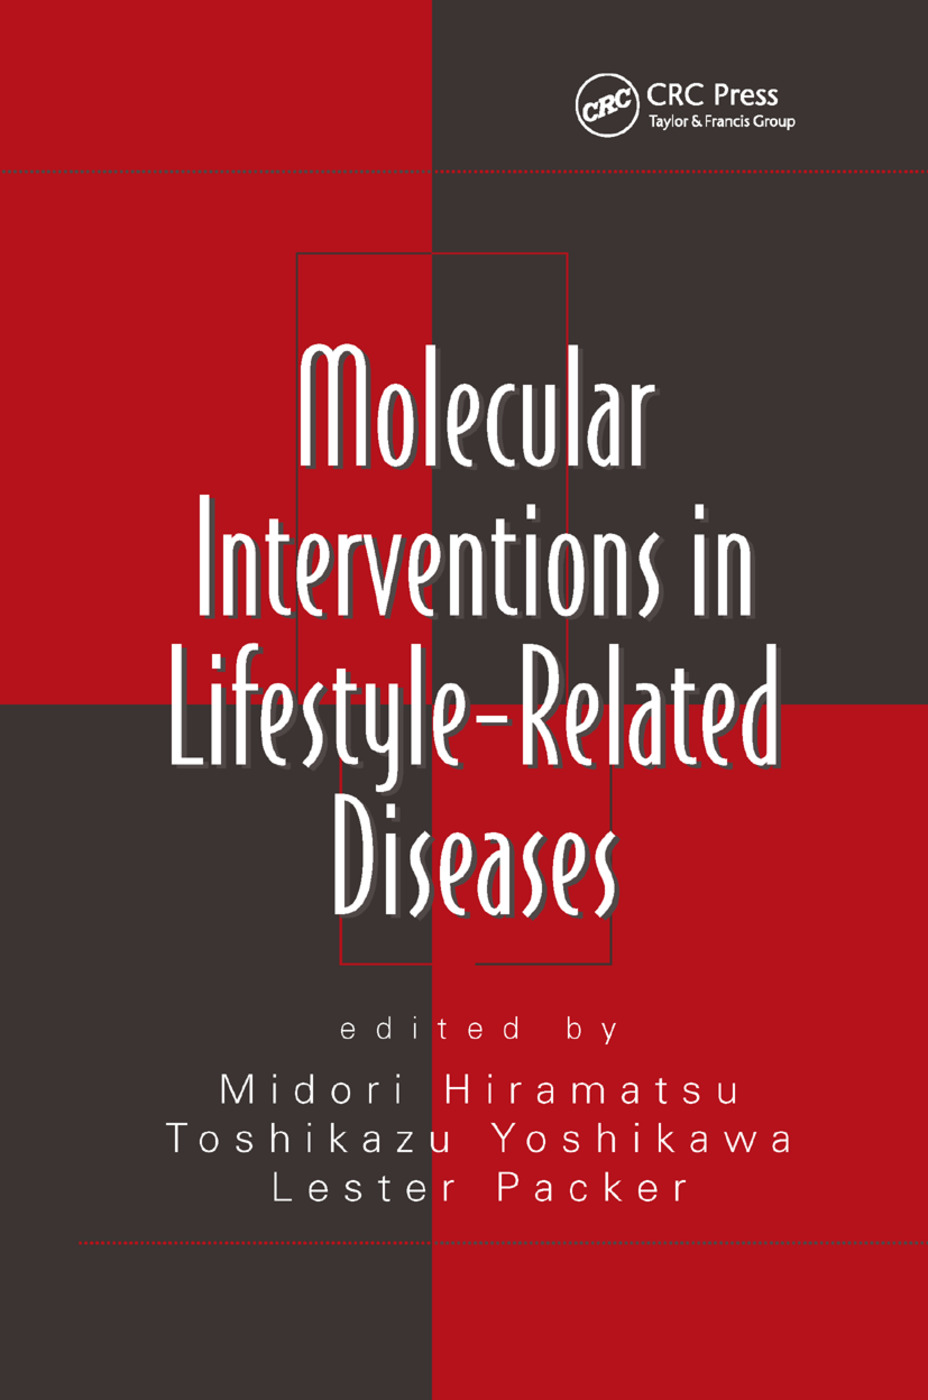 Molecular Interventions in Lifestyle-Related Diseases